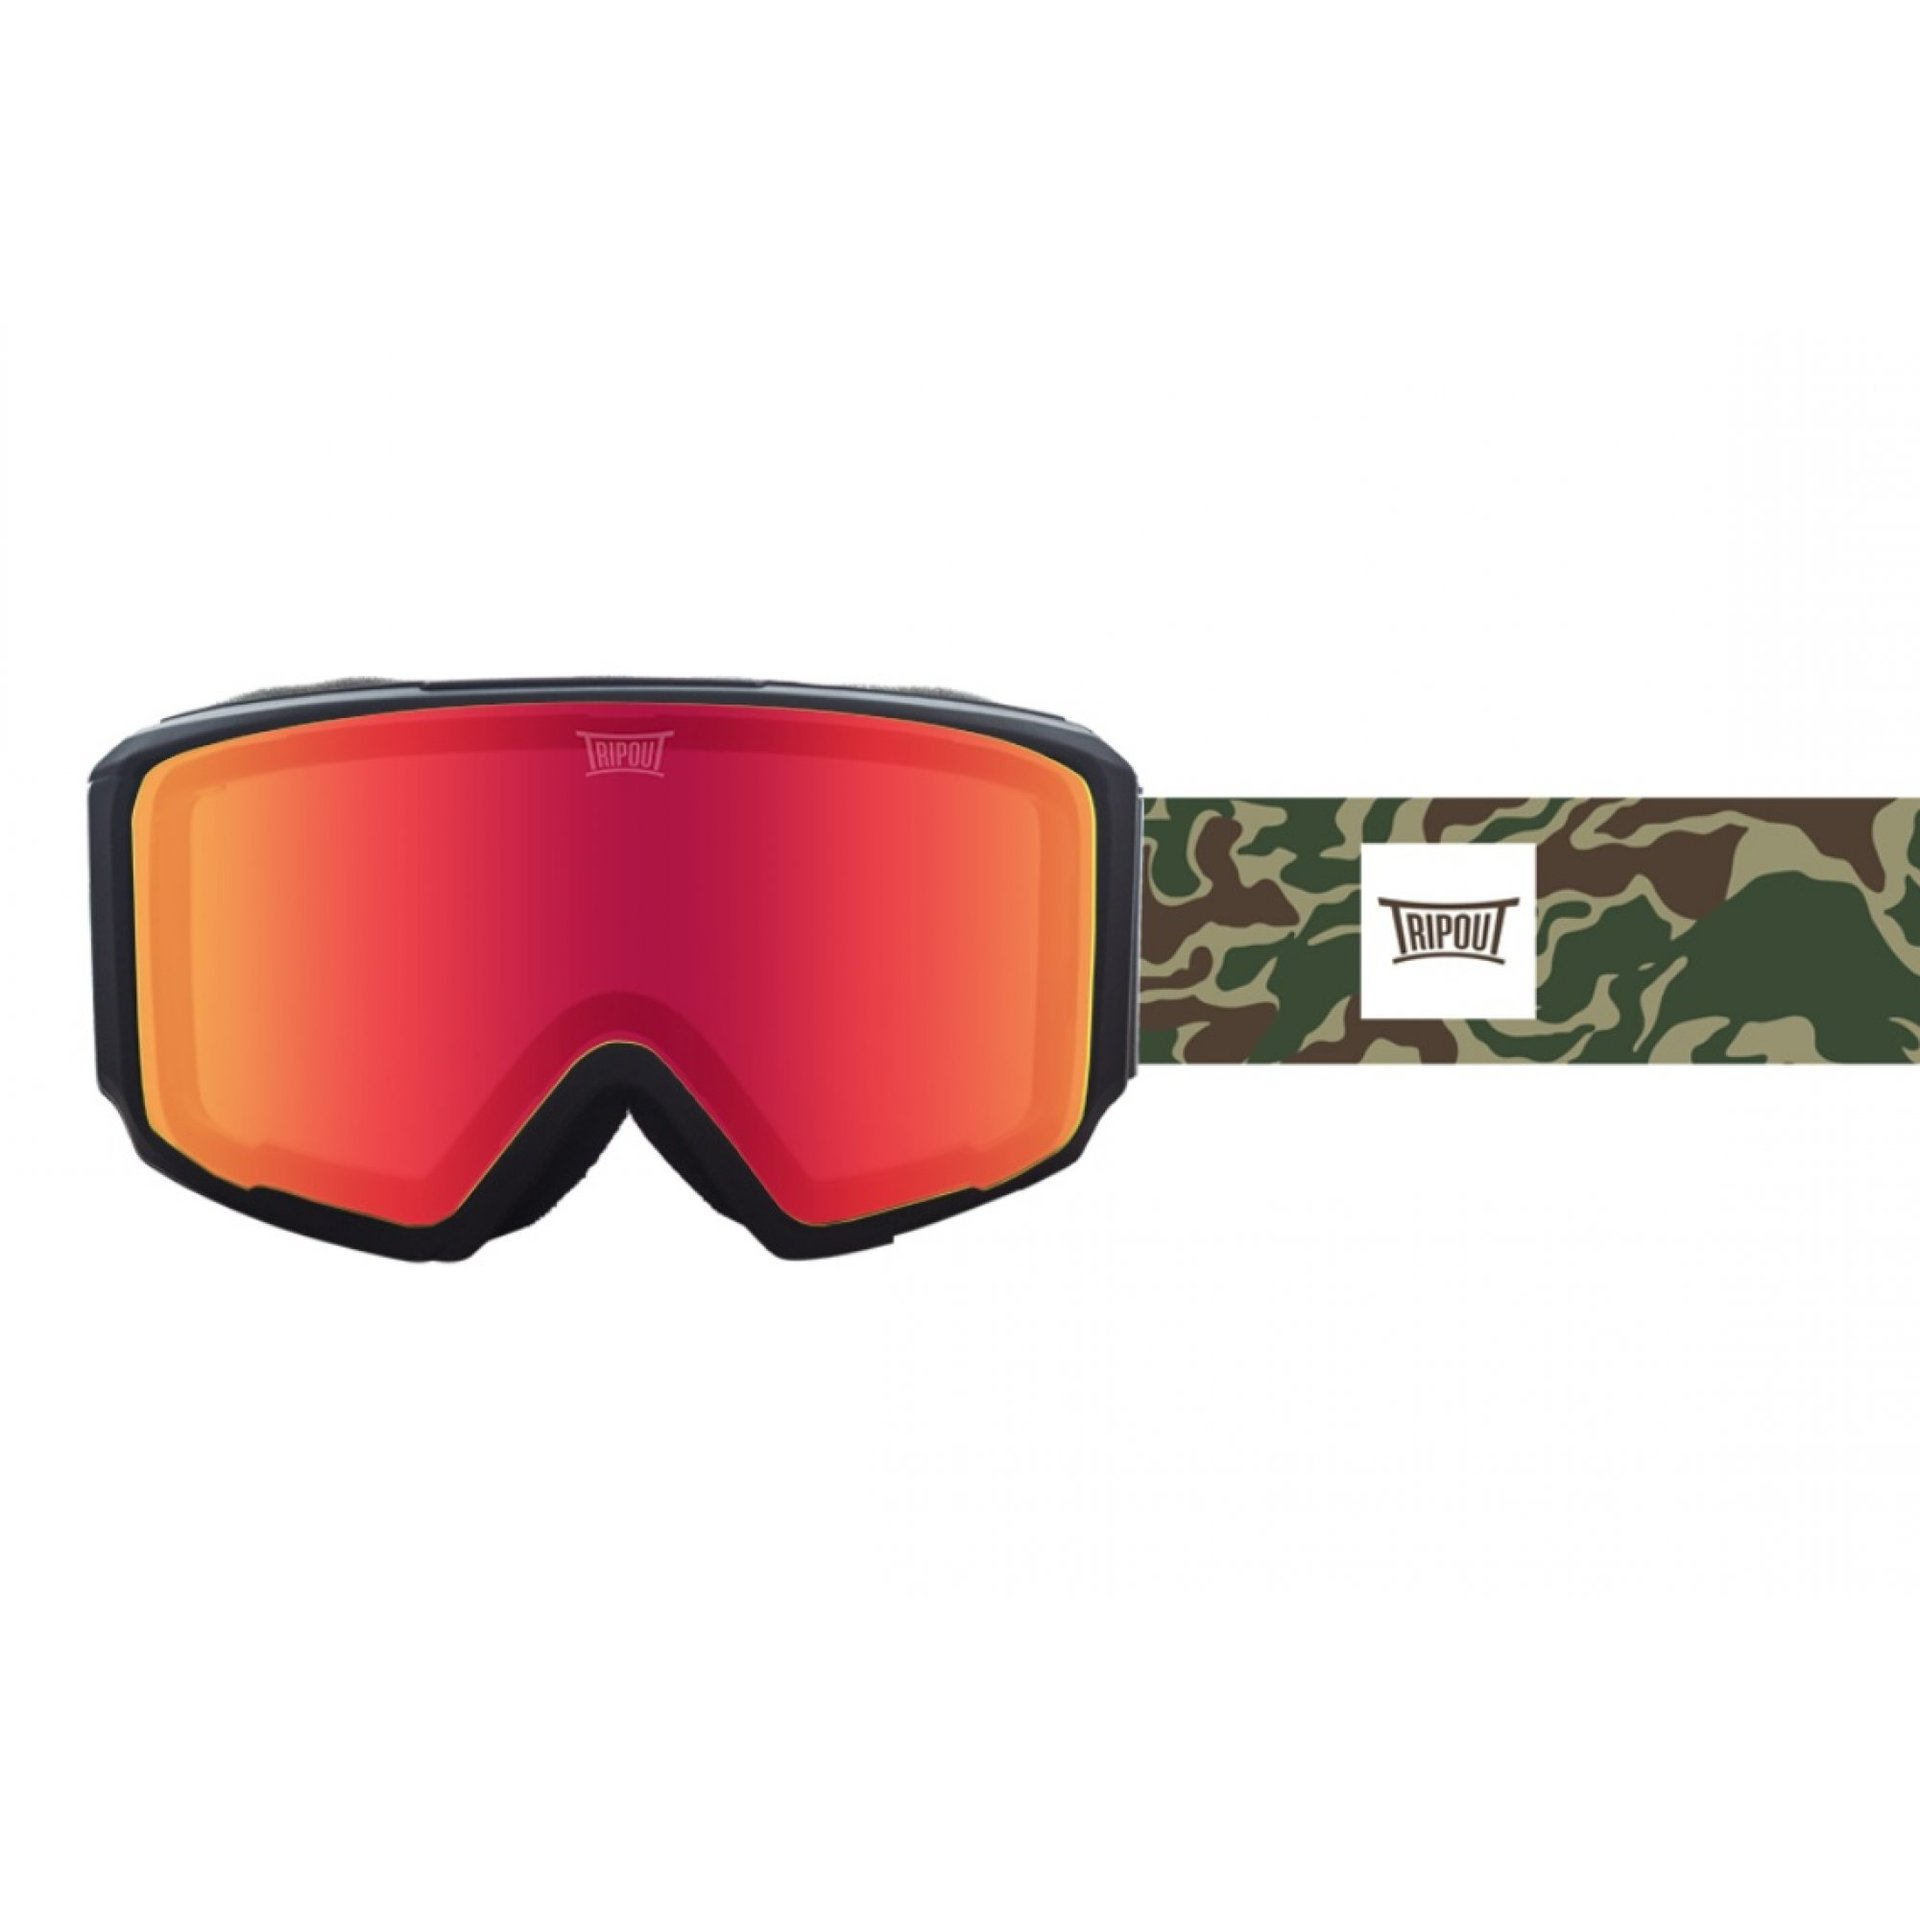 GOGLE TRIPOUT BLAZE CAMO|BLACK|FRESH ORANGE+FOGGY 1